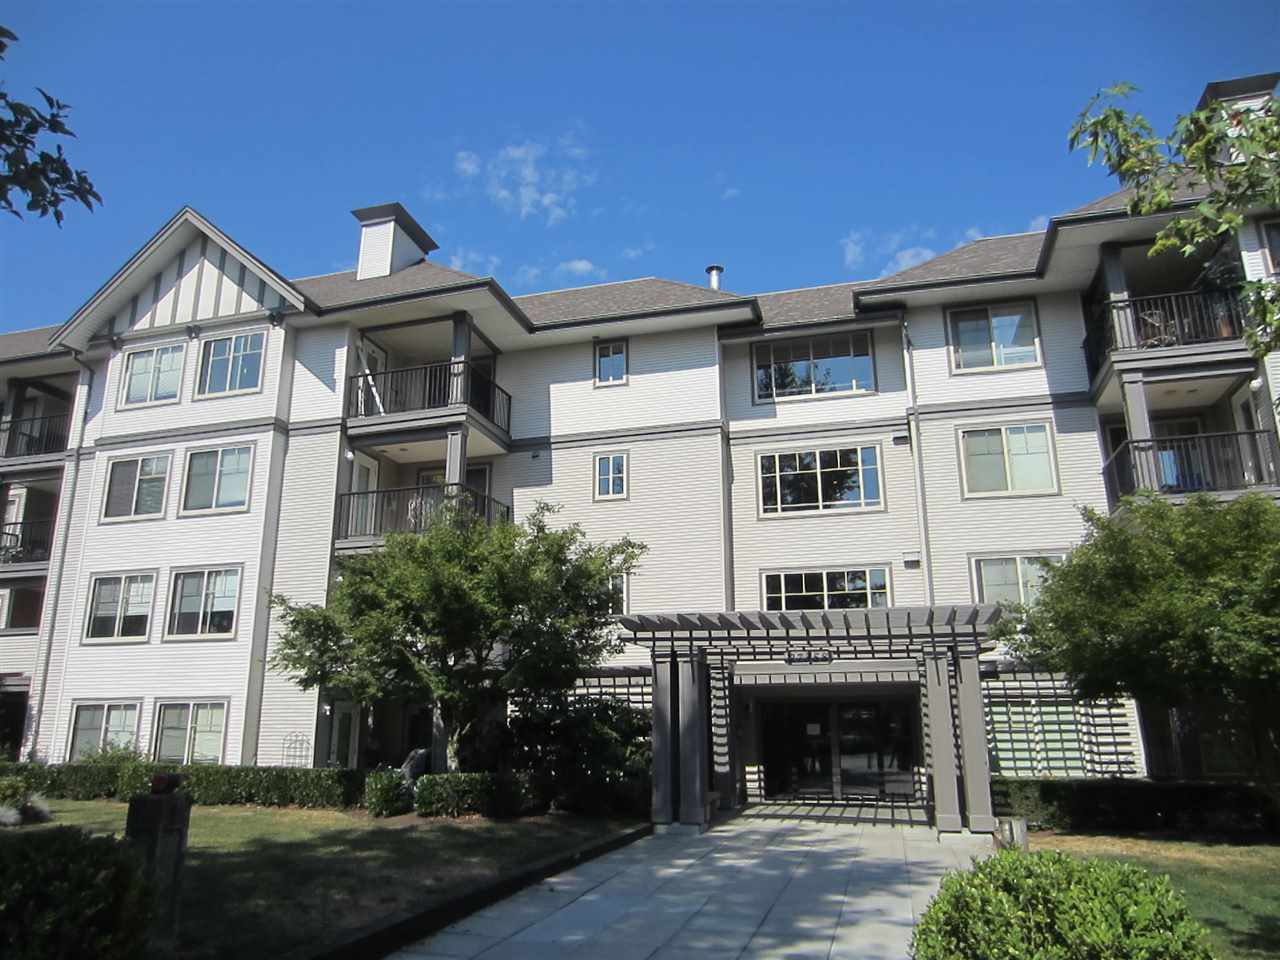 Main Photo: 427 27358 32 AVENUE in : Aldergrove Langley Condo for sale : MLS®# R2073854